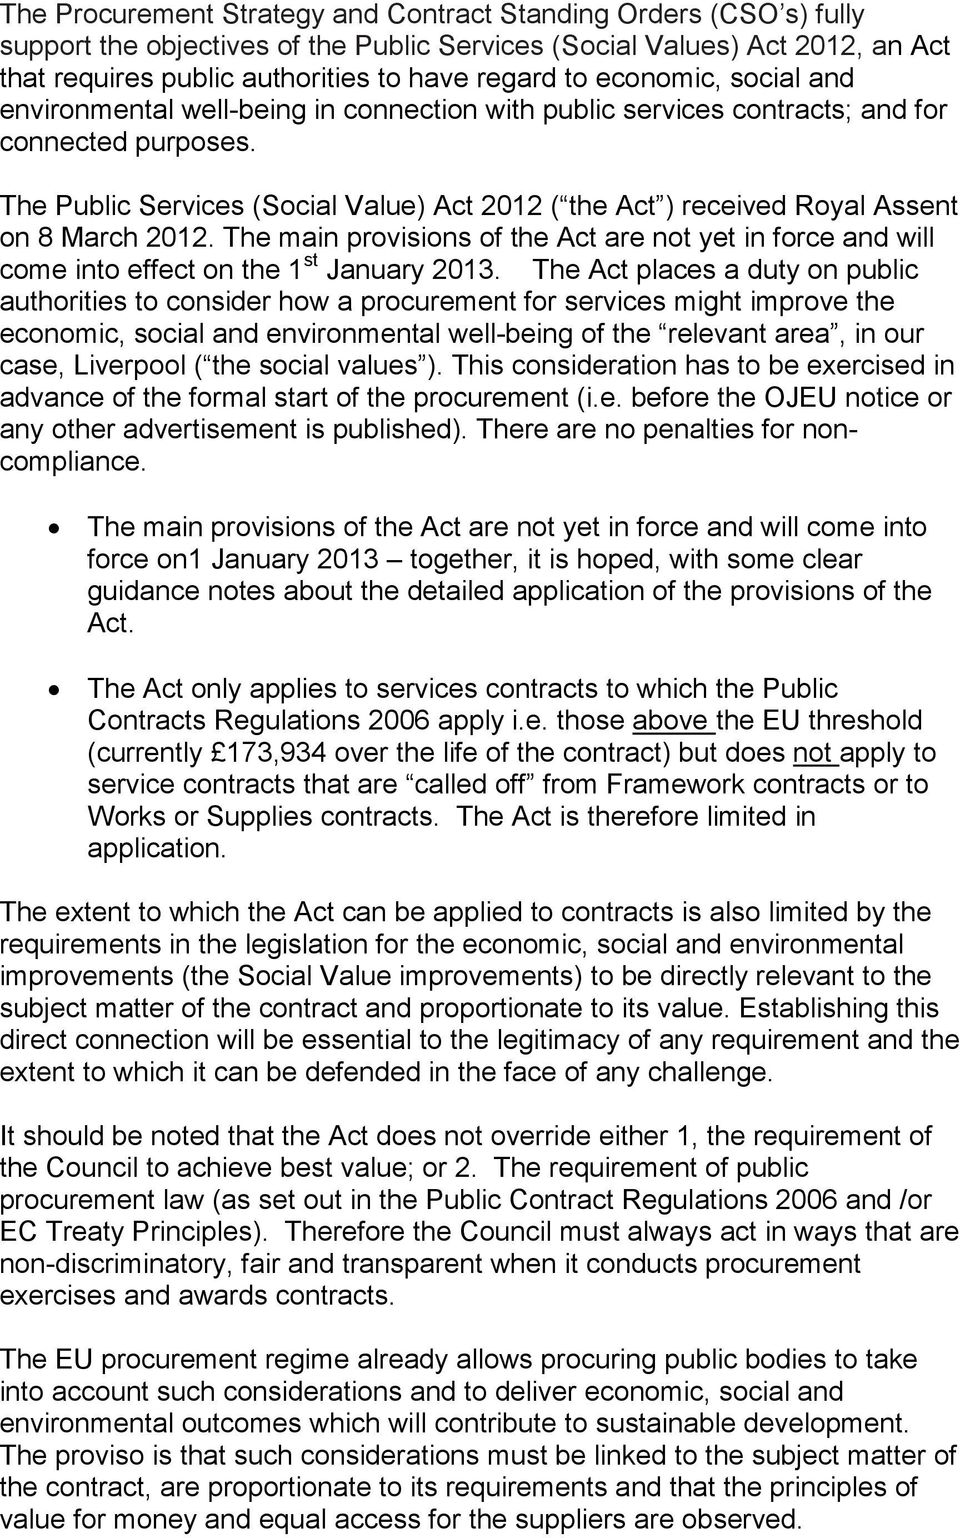 The Public Services (Social Value) Act 2012 ( the Act ) received Royal Assent on 8 March 2012. The main provisions of the Act are not yet in force and will come into effect on the 1 st January 2013.